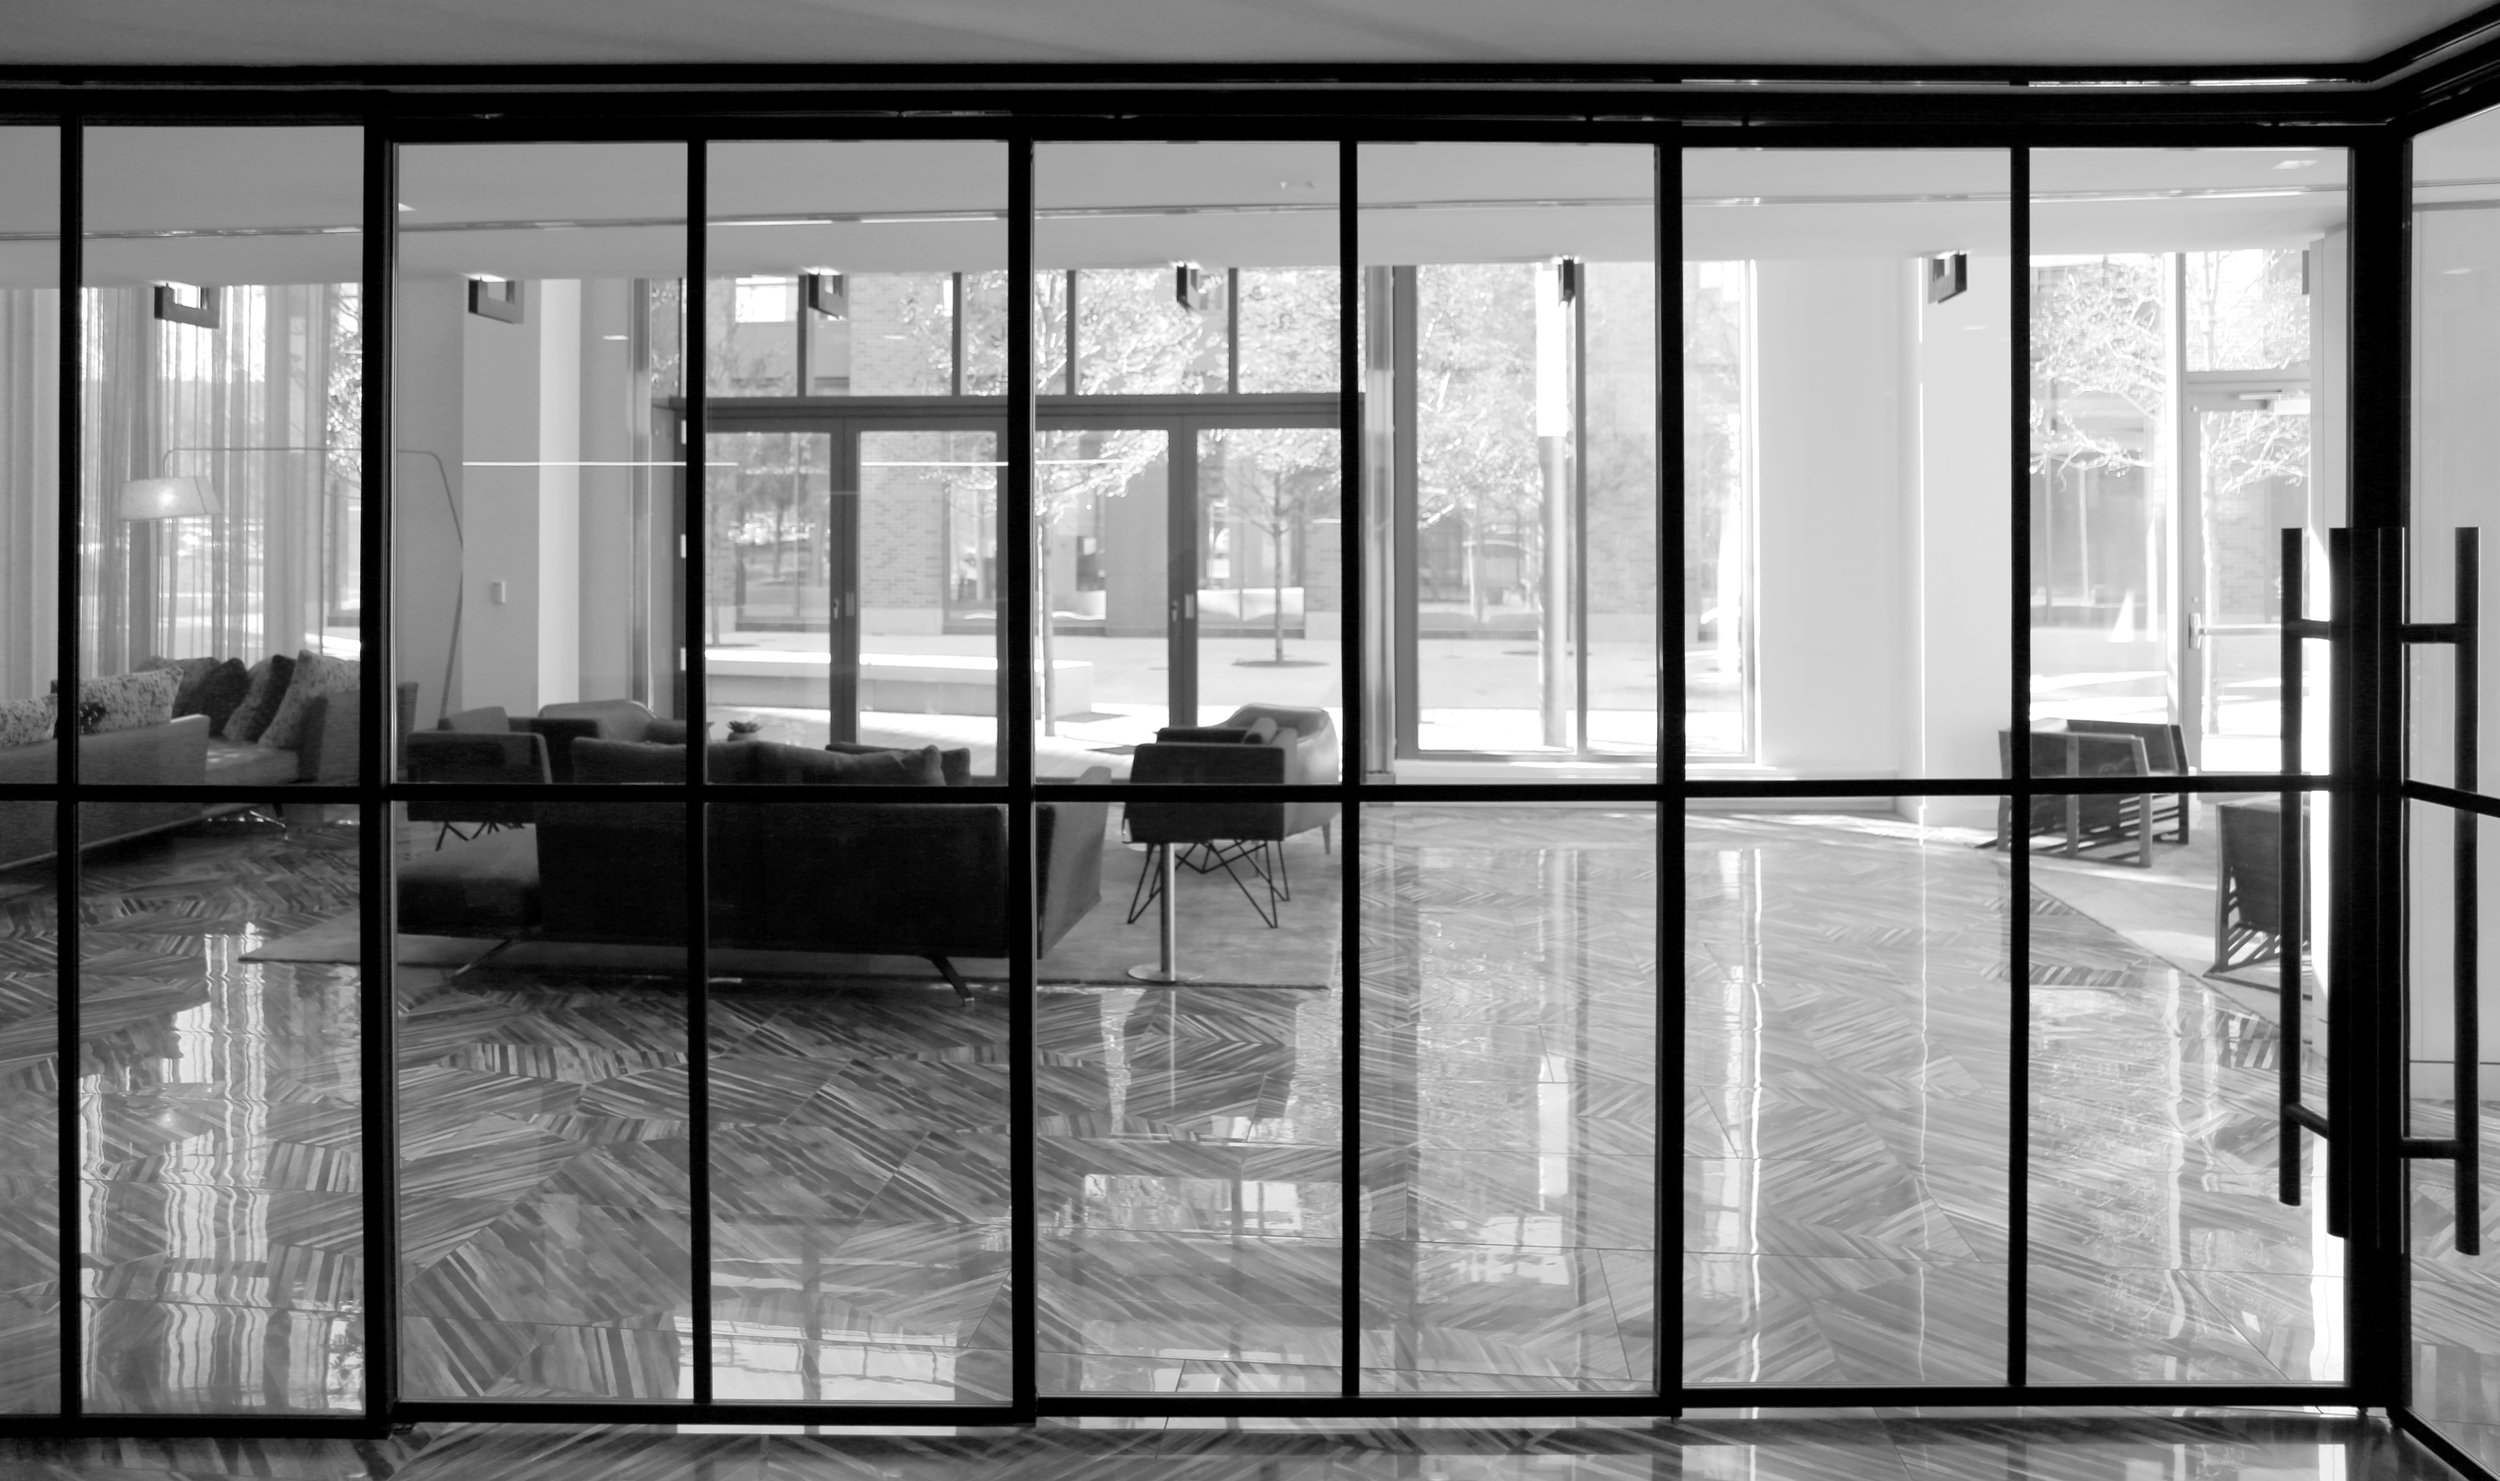 Black Anodized Applied Glass Mullions Sliding Wall System - Spaceworks AI.jpg